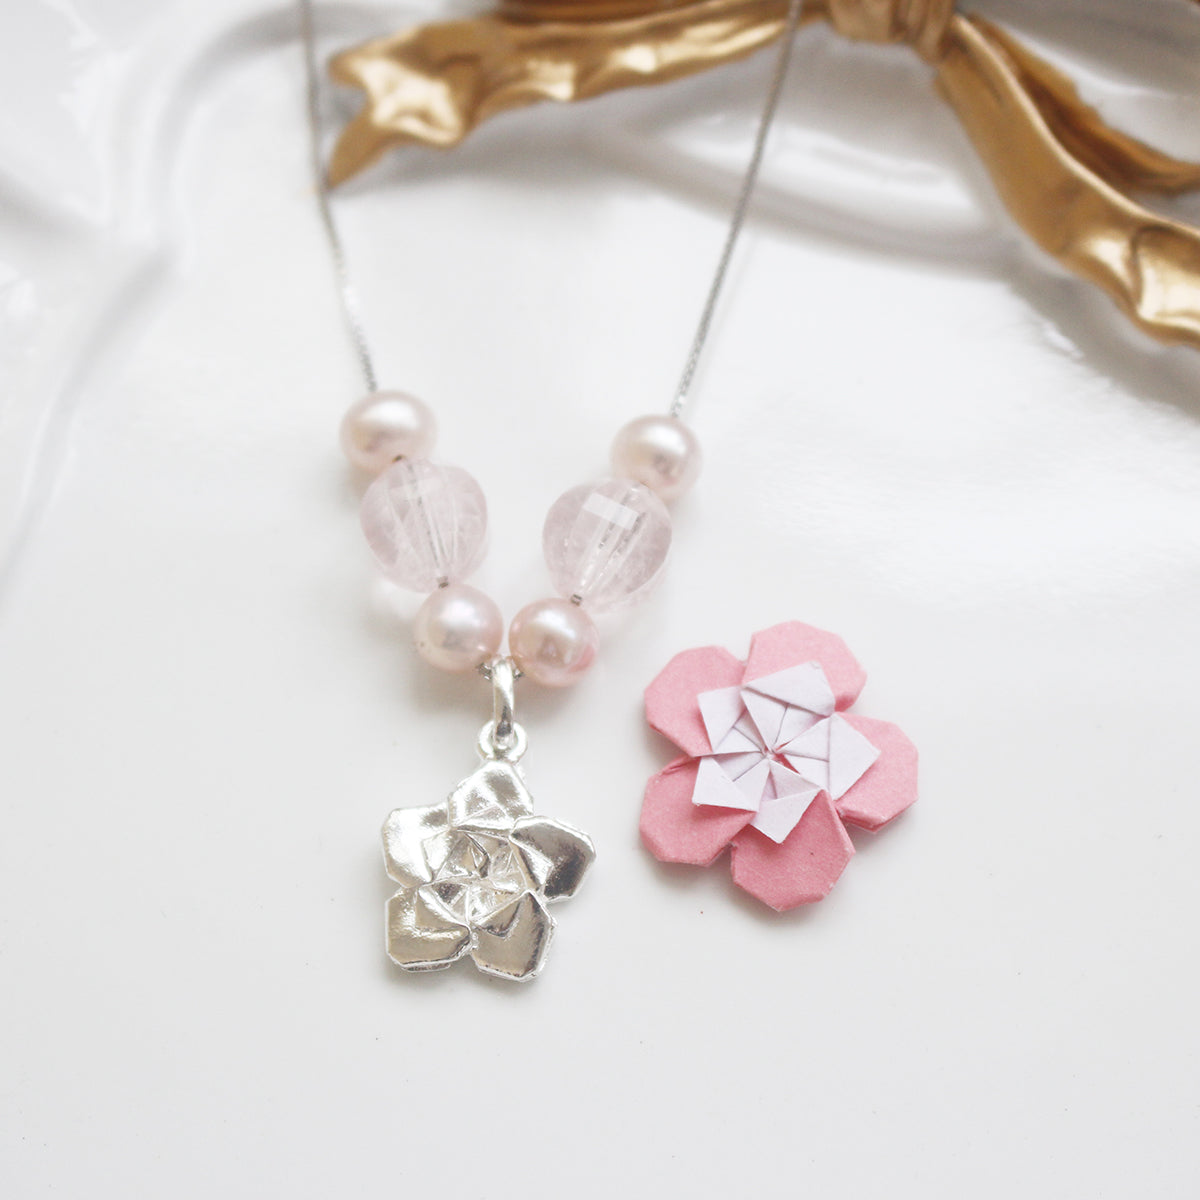 925 Silver Origami Sakura Pearl and Rose Quartz Necklace